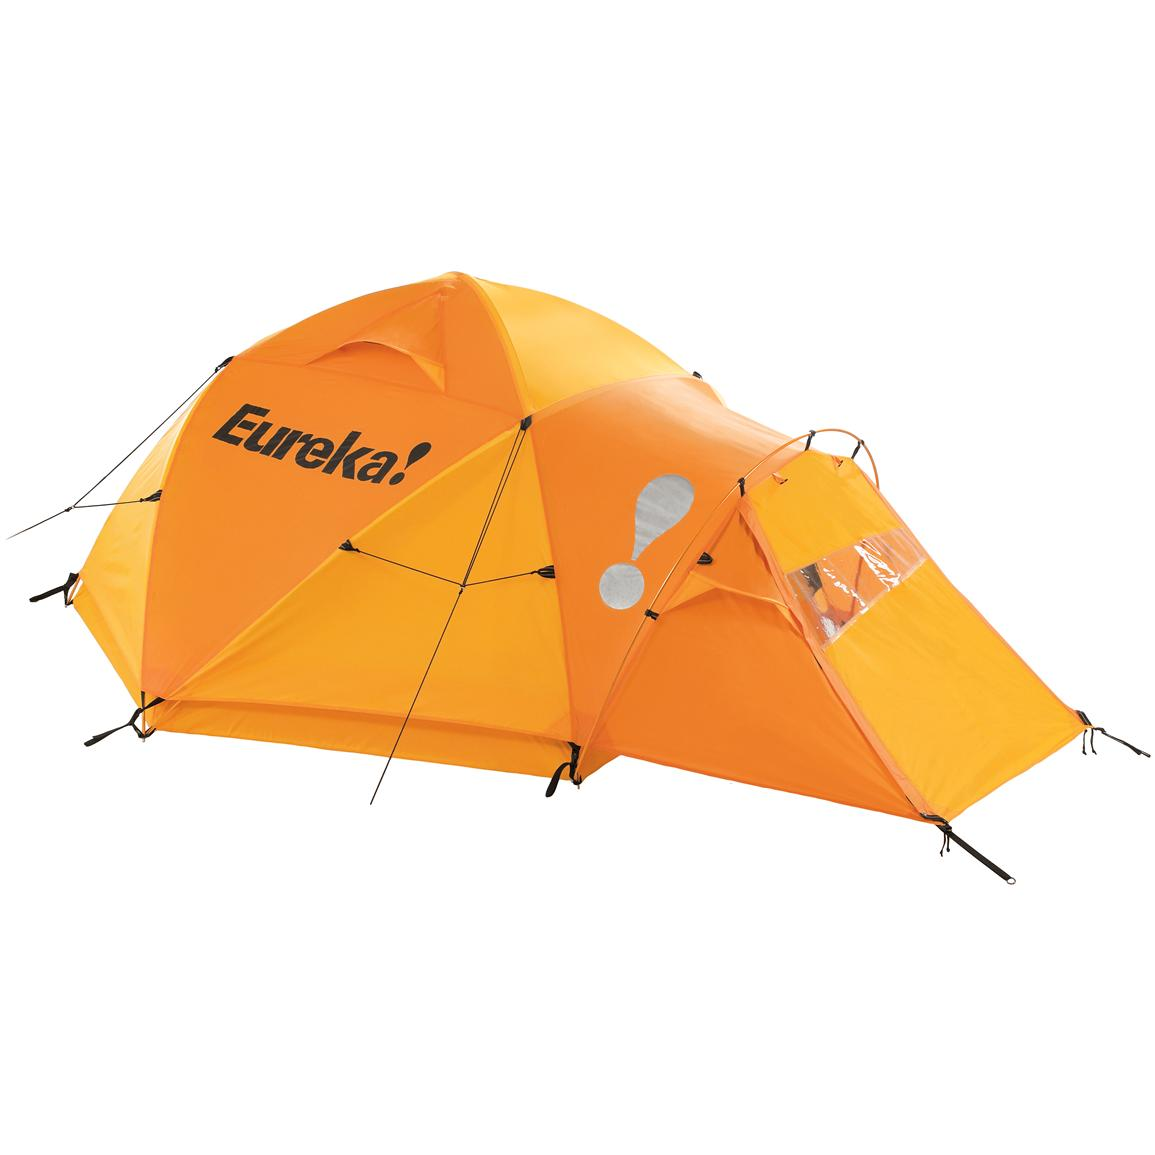 Eureka!® K-2 XT Tent, Yellow with Rainfly